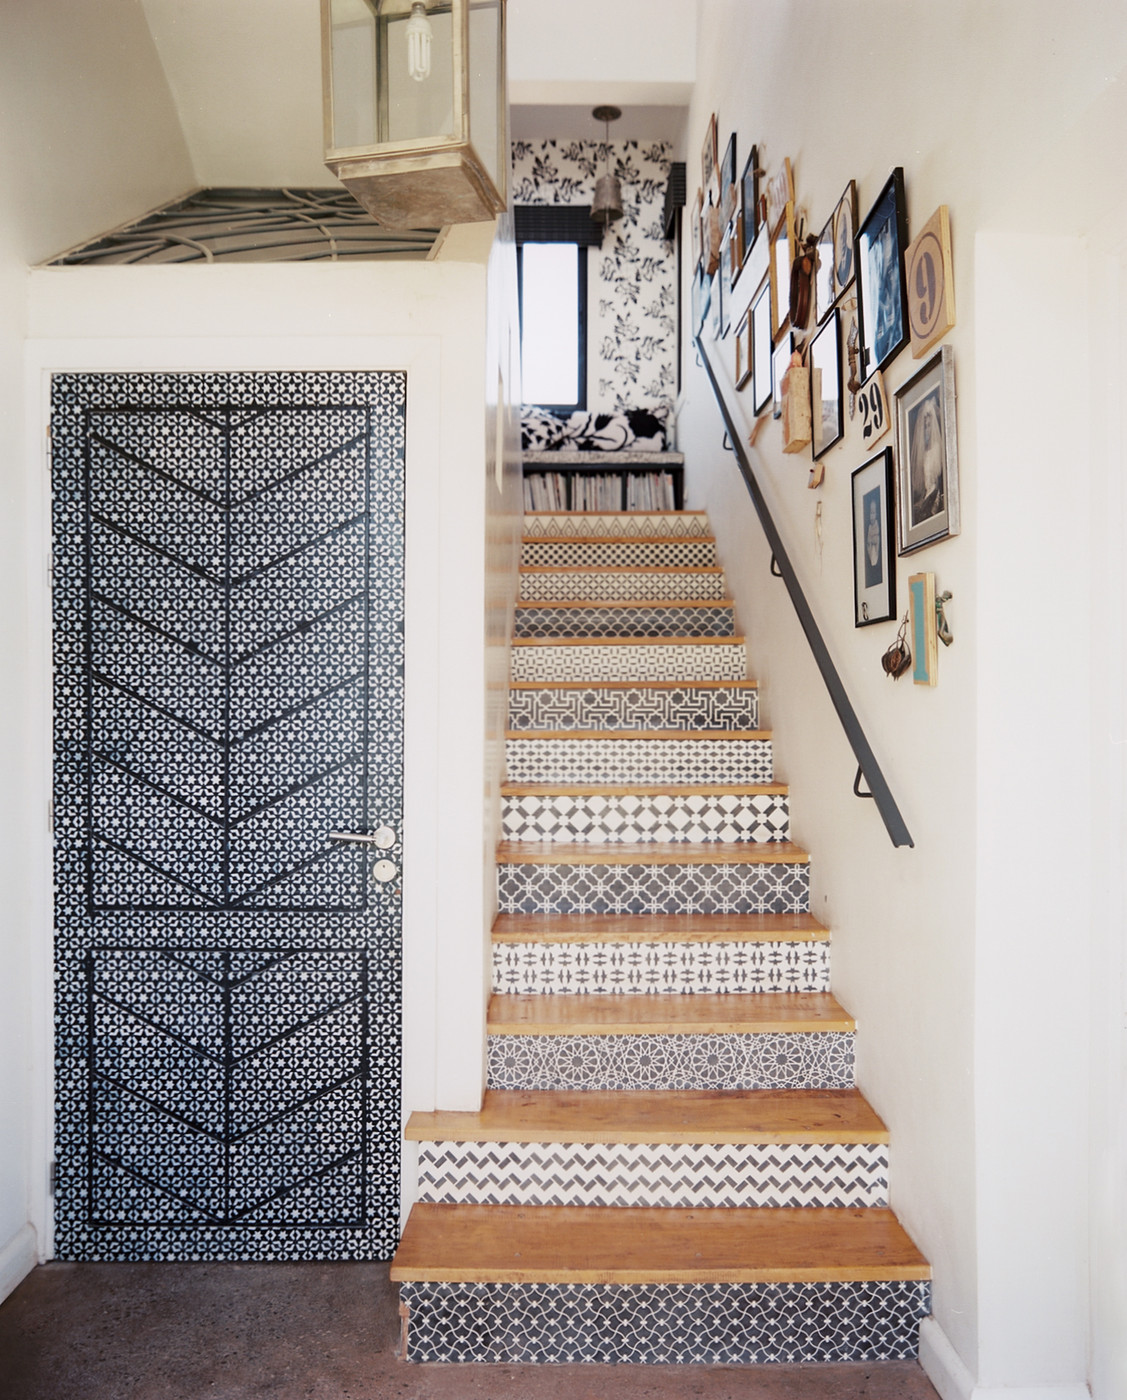 Wallpapered stair risers do it yourself projects lonny - Idees deco ...